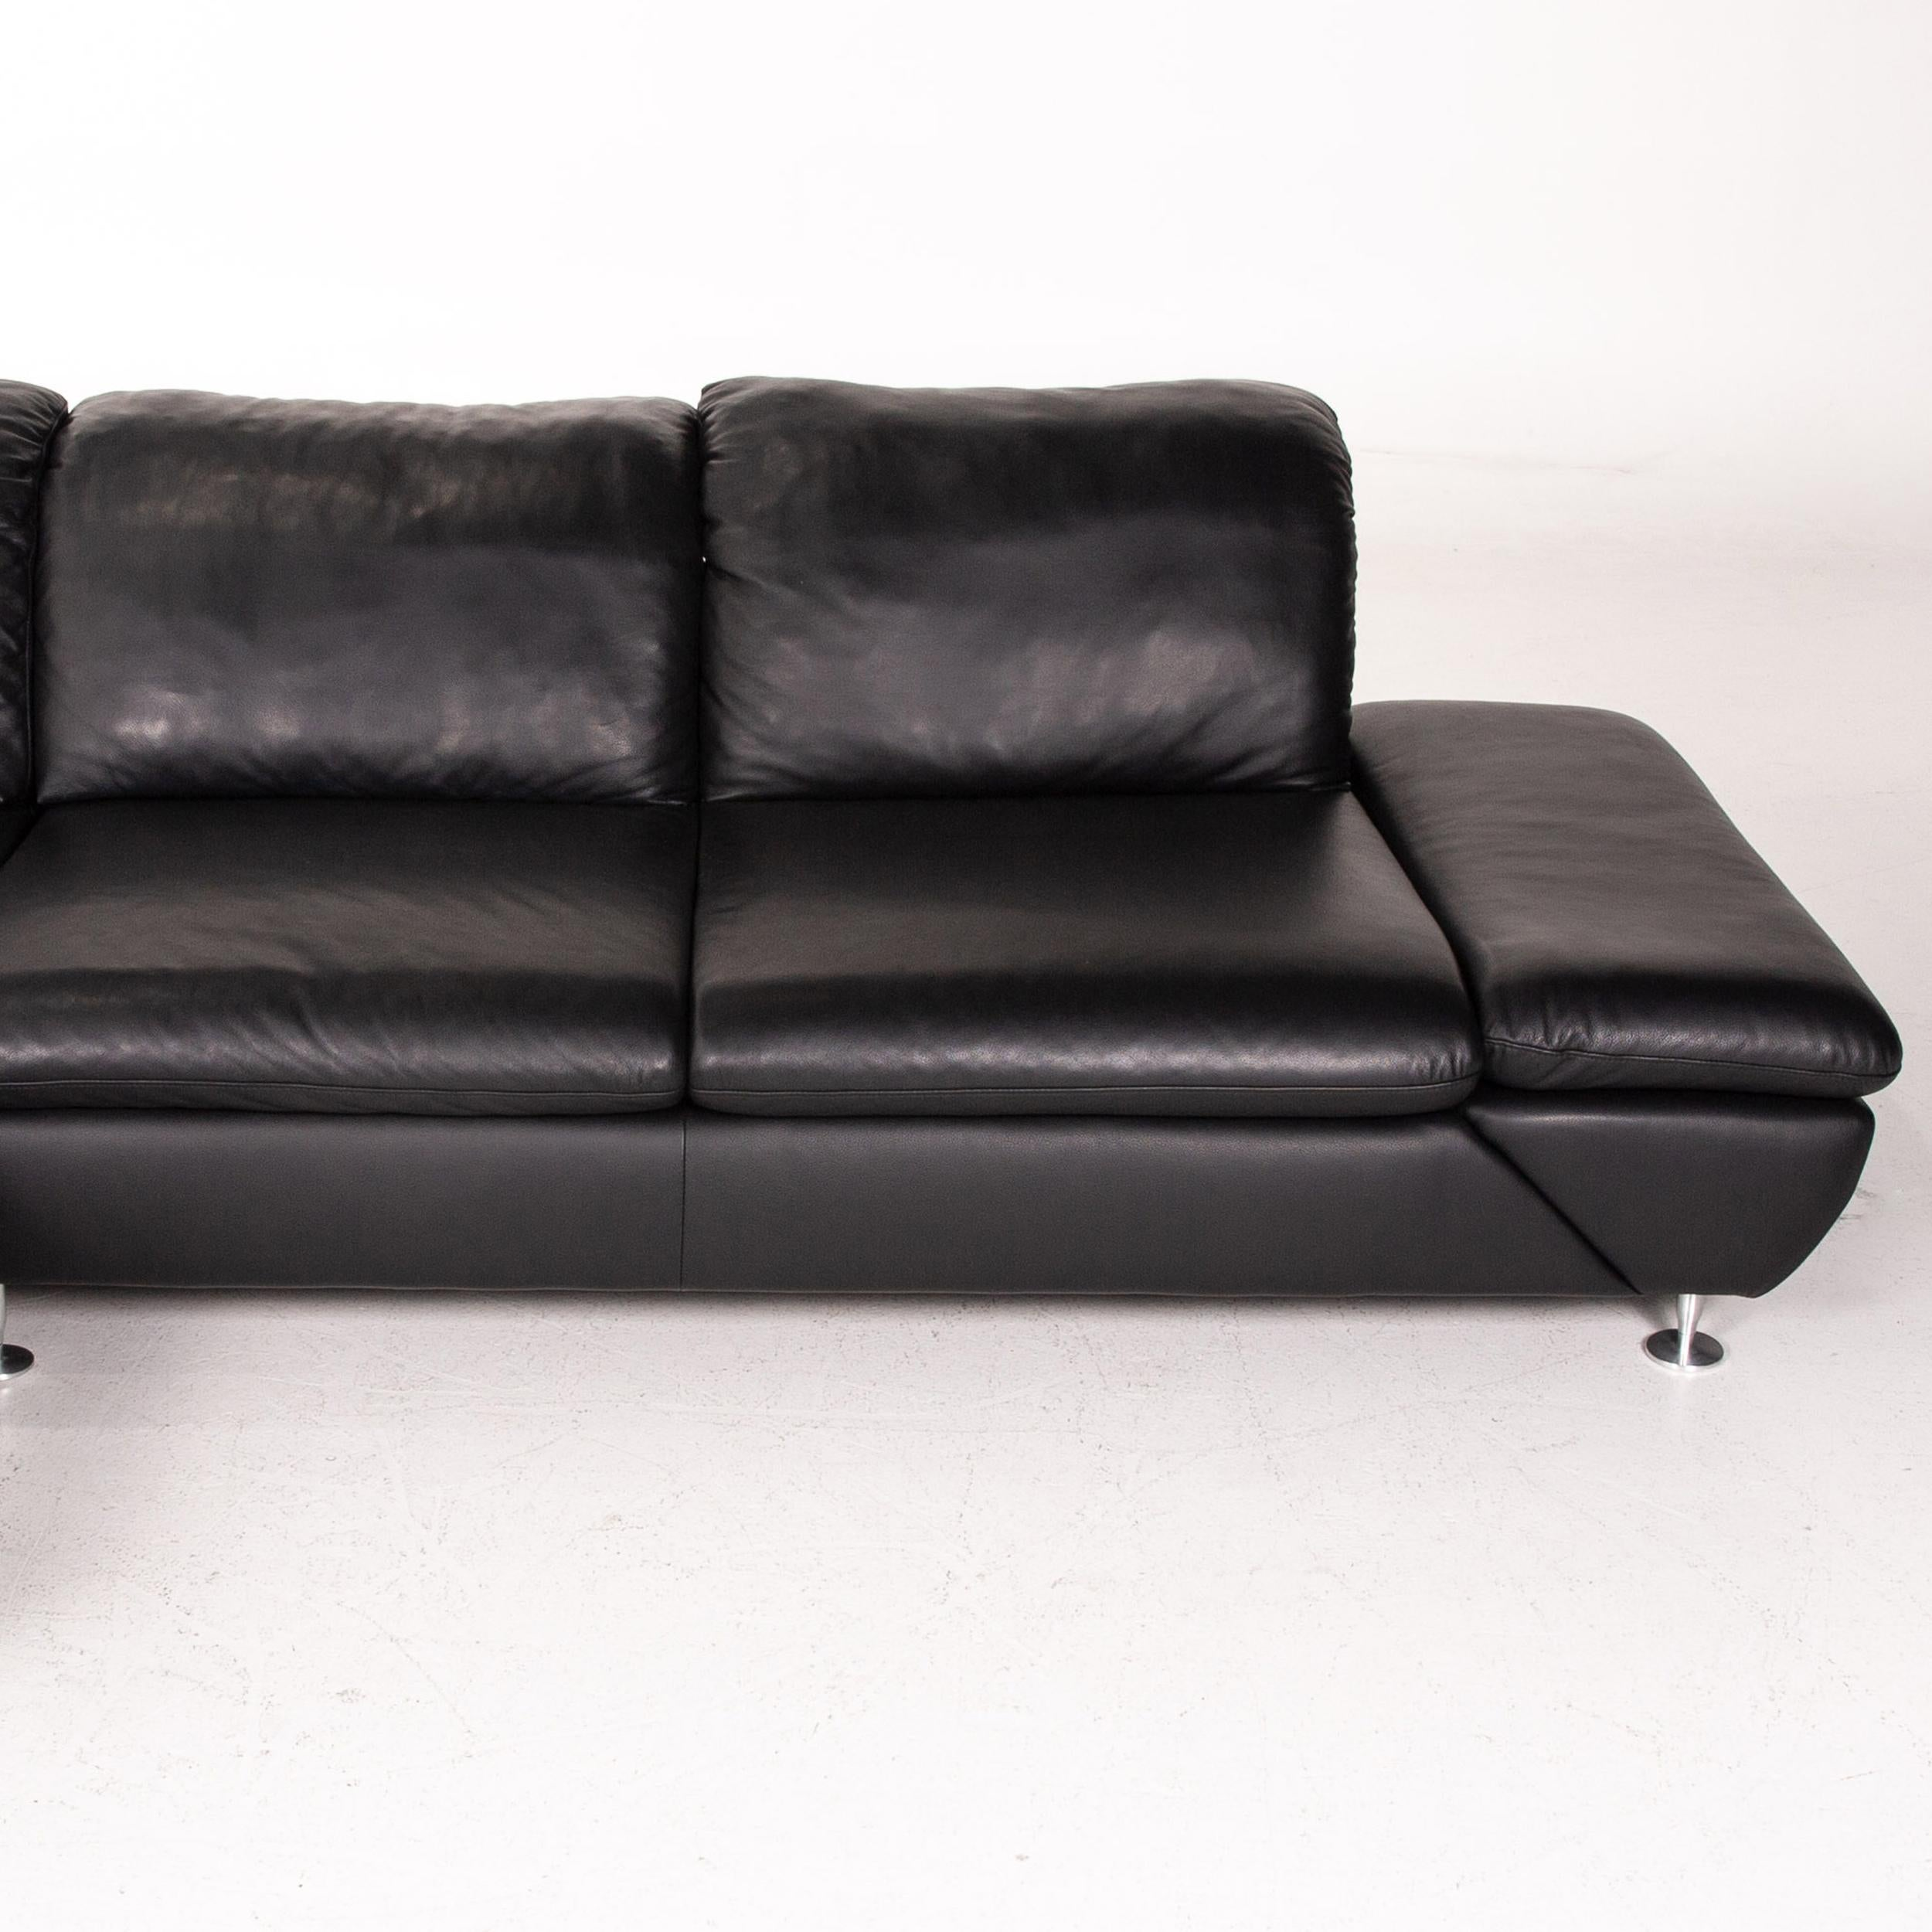 Schillig Taoo Willi Schillig Taoo Leather Corner Sofa Black Sofa Function Couch At 1stdibs